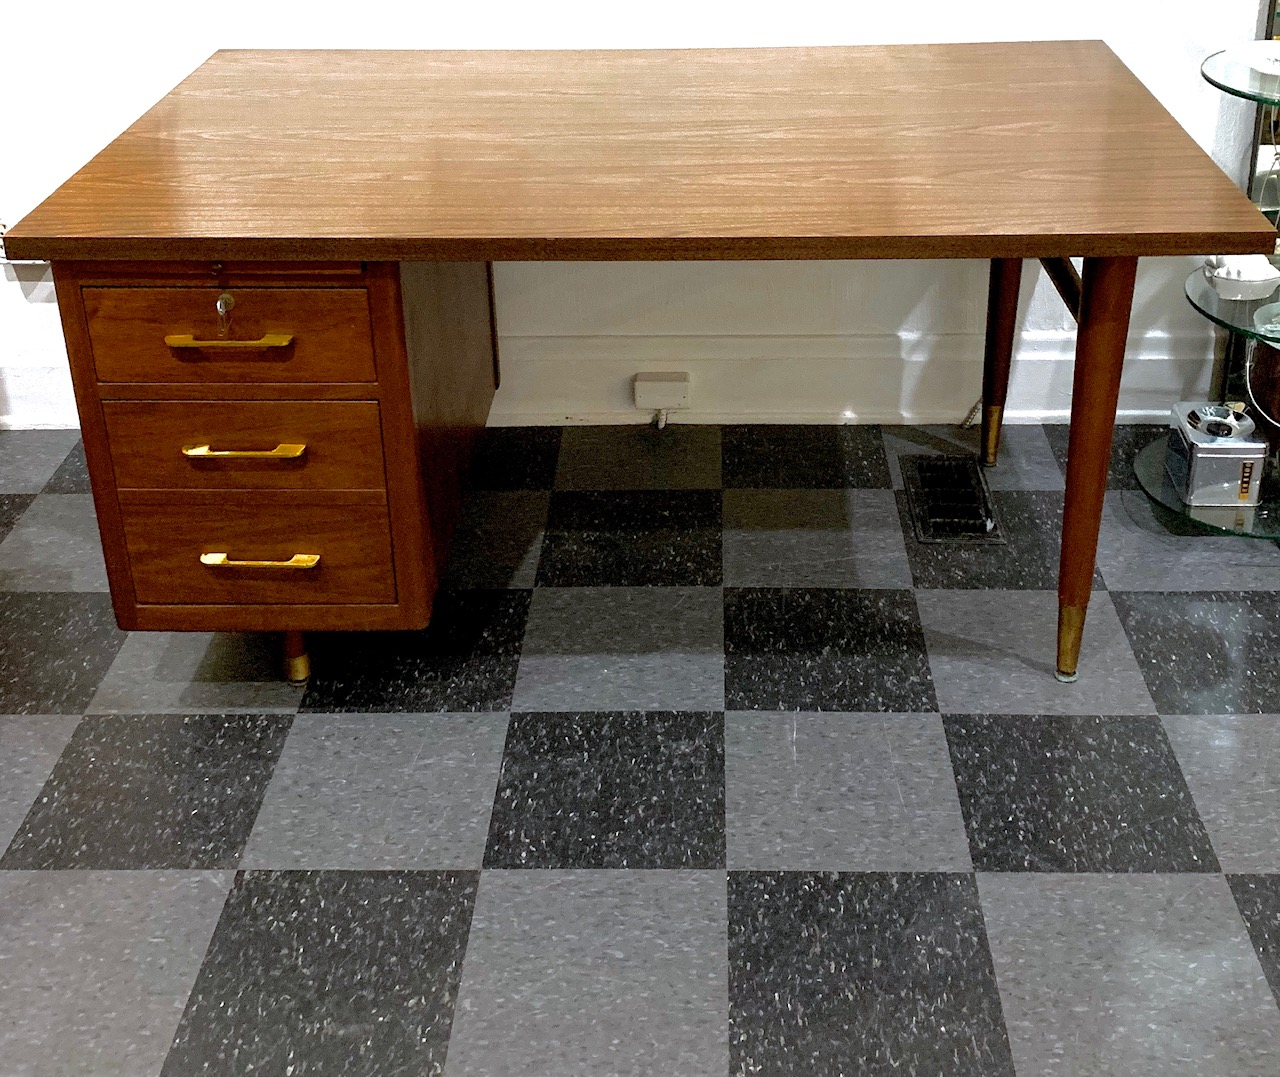 Nice big vintage desk with 5' x 3' of easy-to-clean workspace, $250